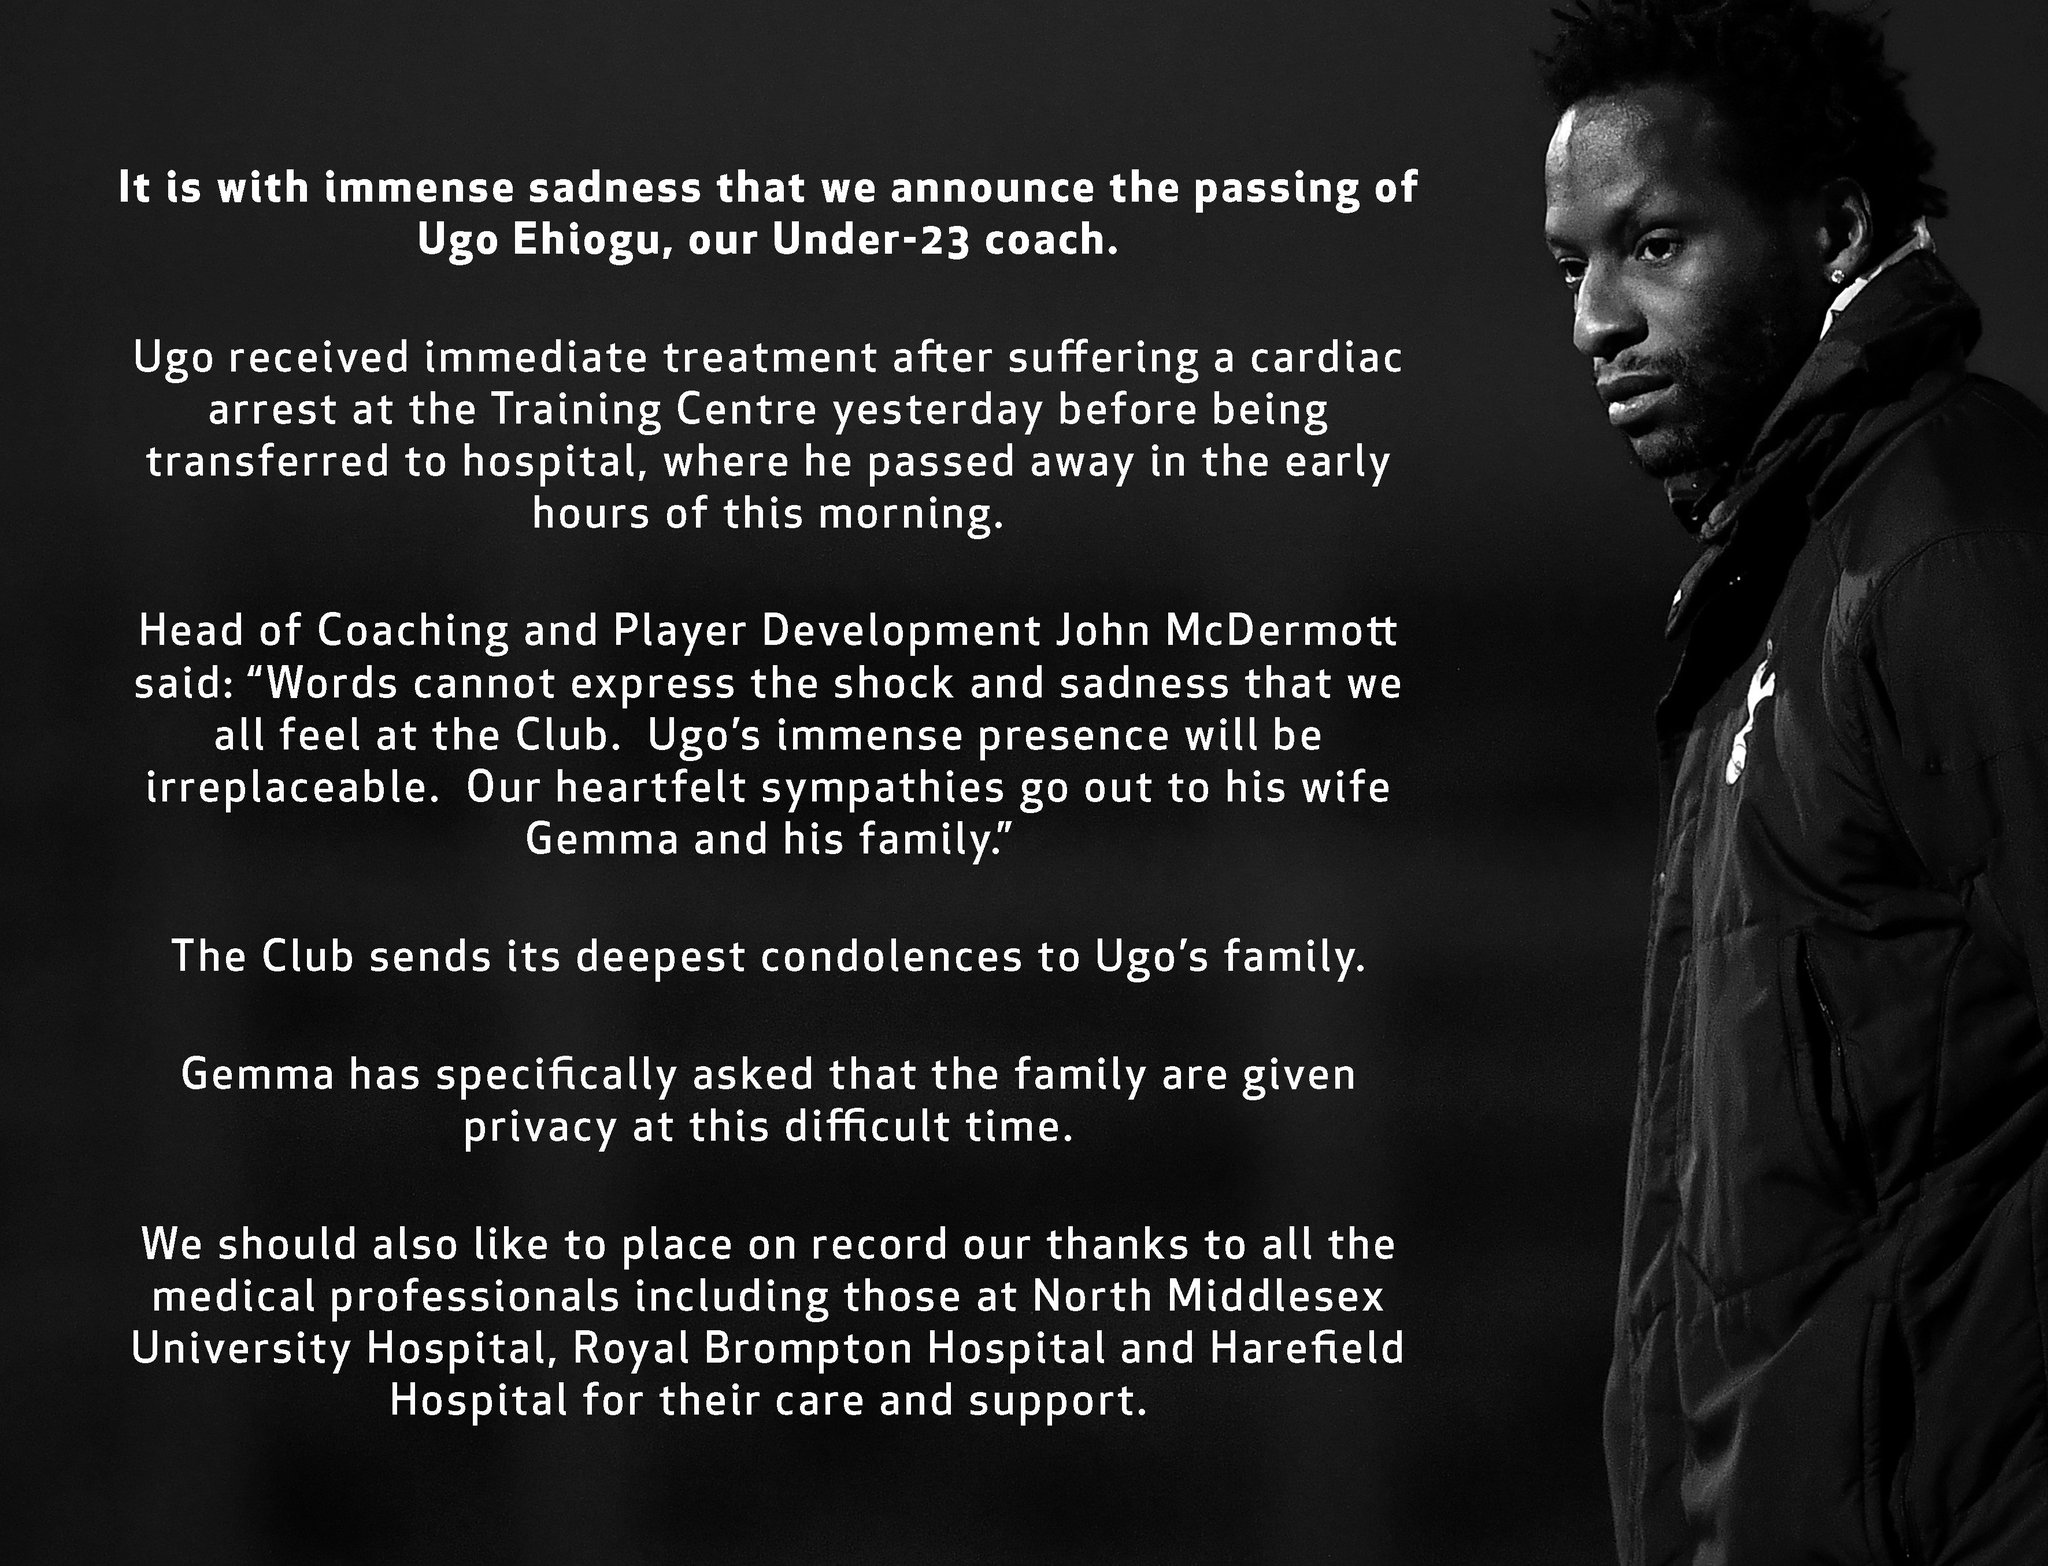 It is with immense sadness that we announce the passing of Ugo Ehiogu, our Under-23 coach. https://t.co/sSU0yqVfyk